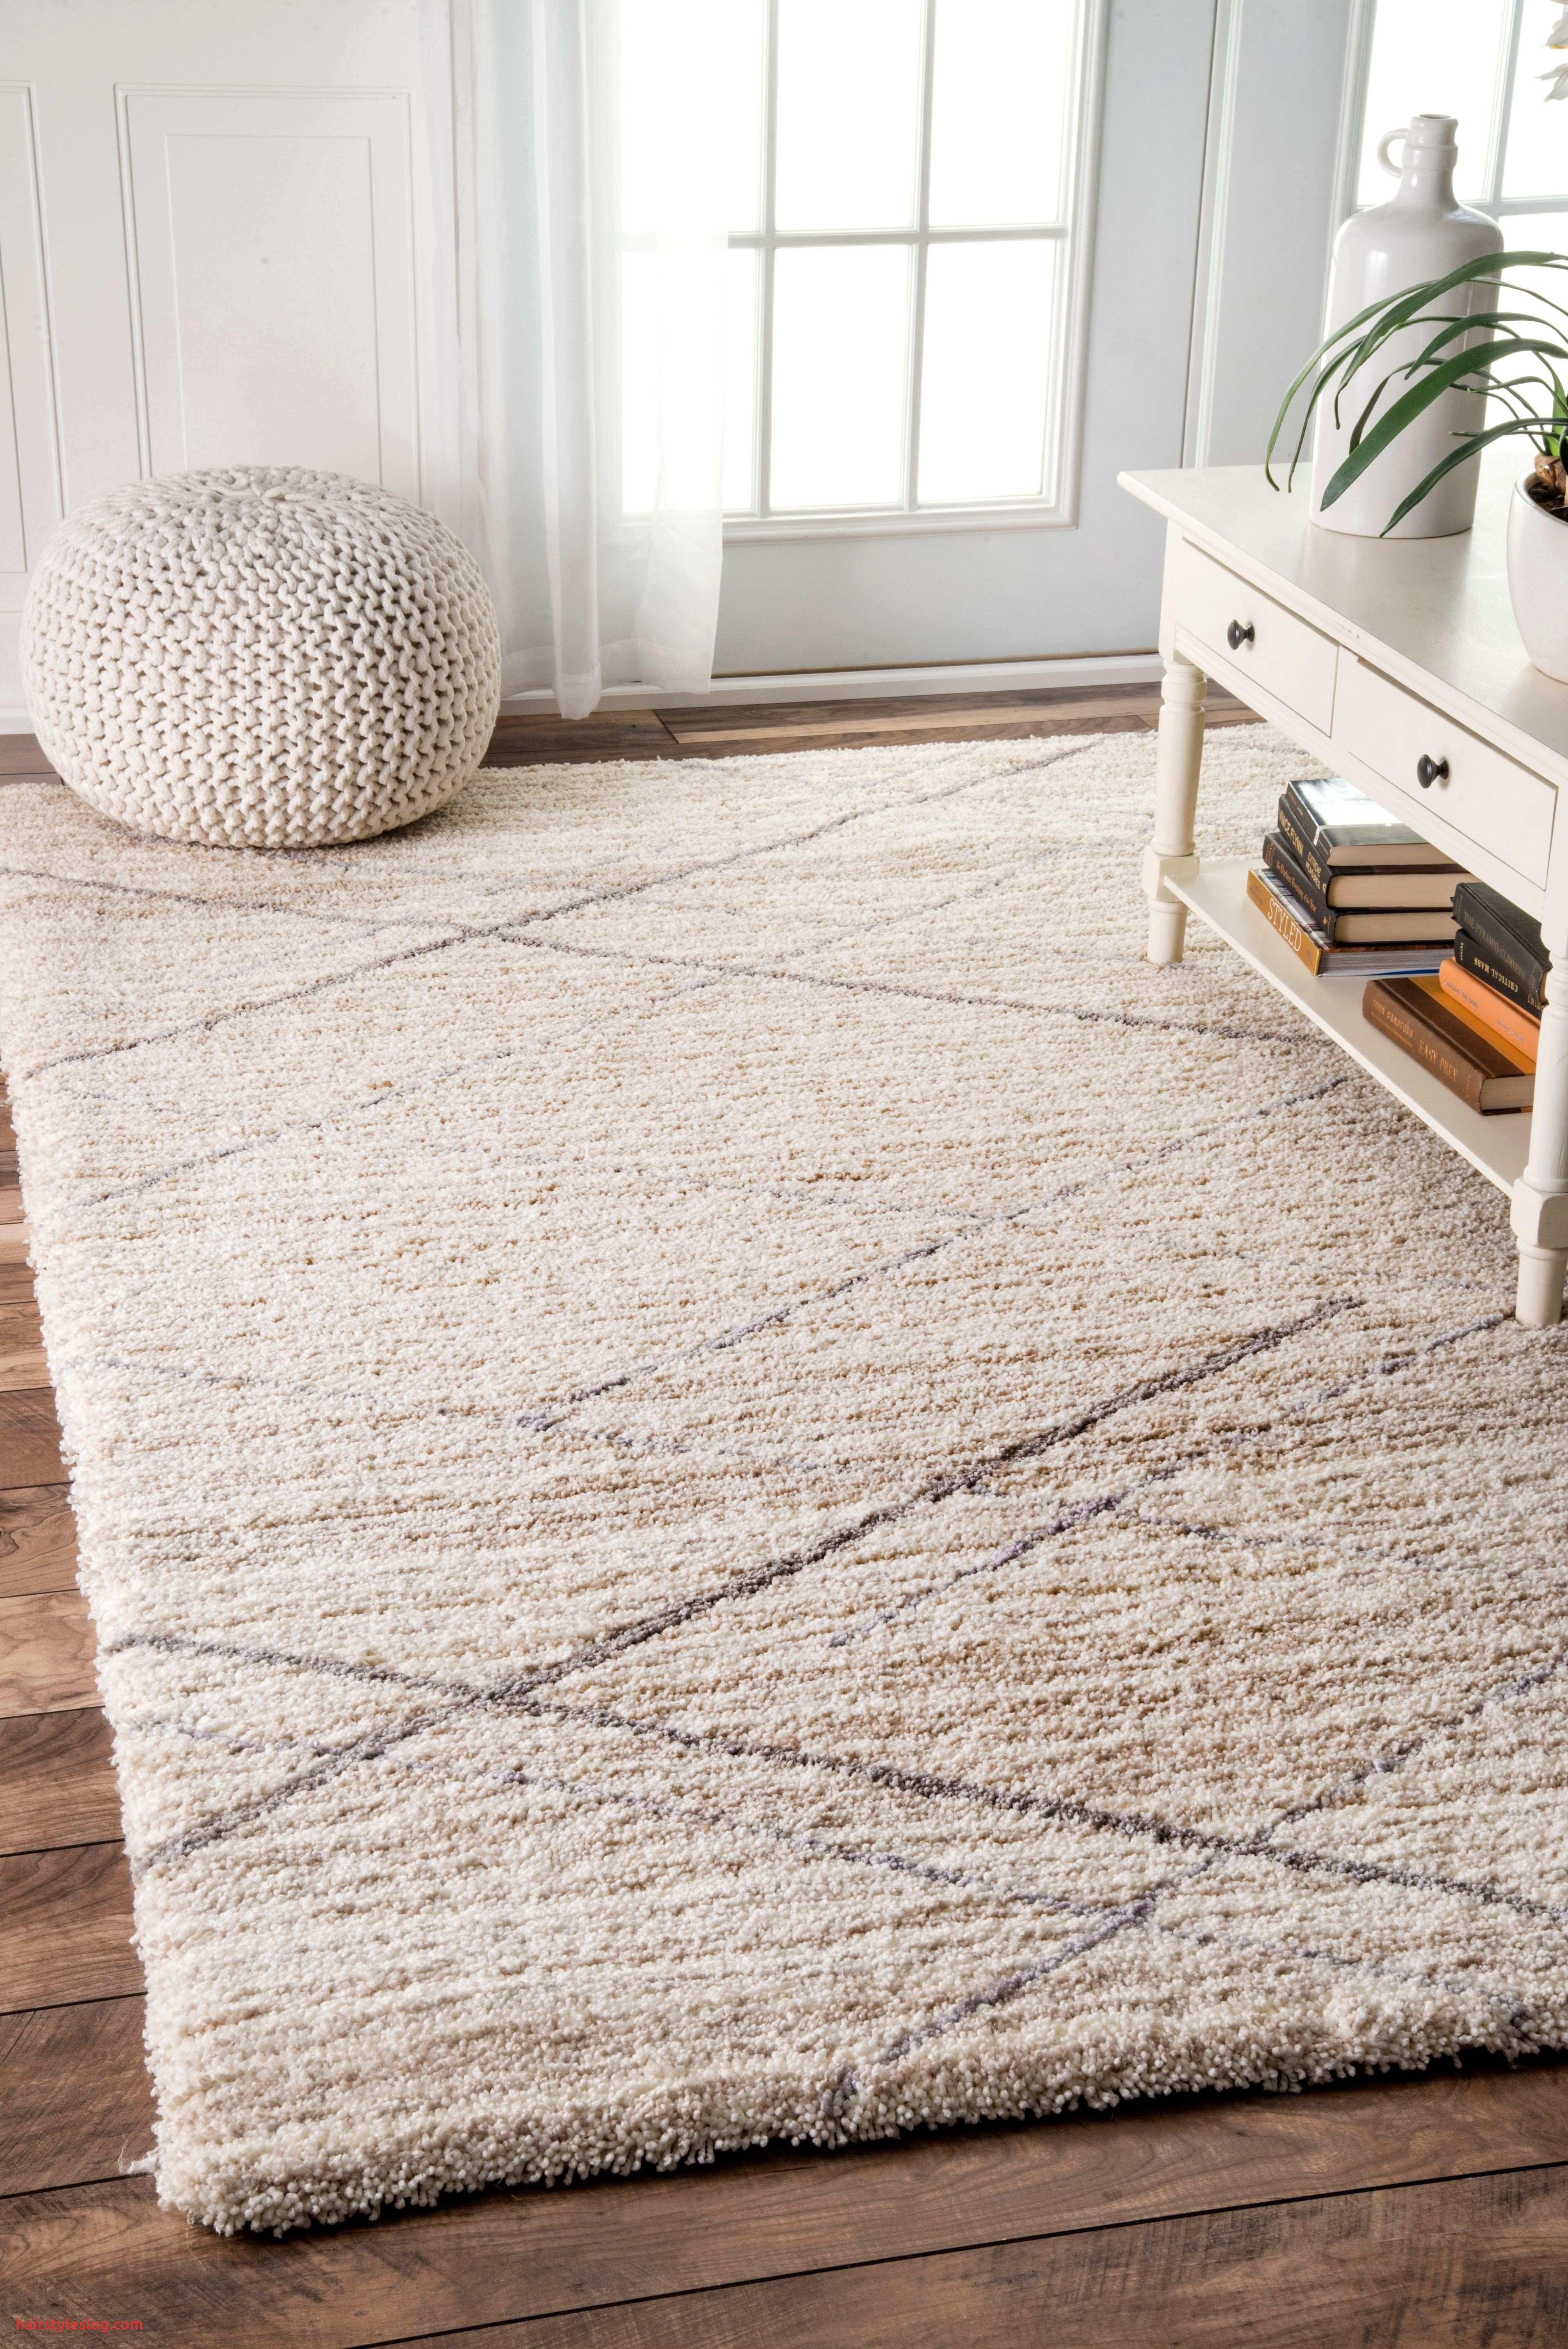 30 New 12 8 Area Rug Which Popular This Year Shag Rug Living